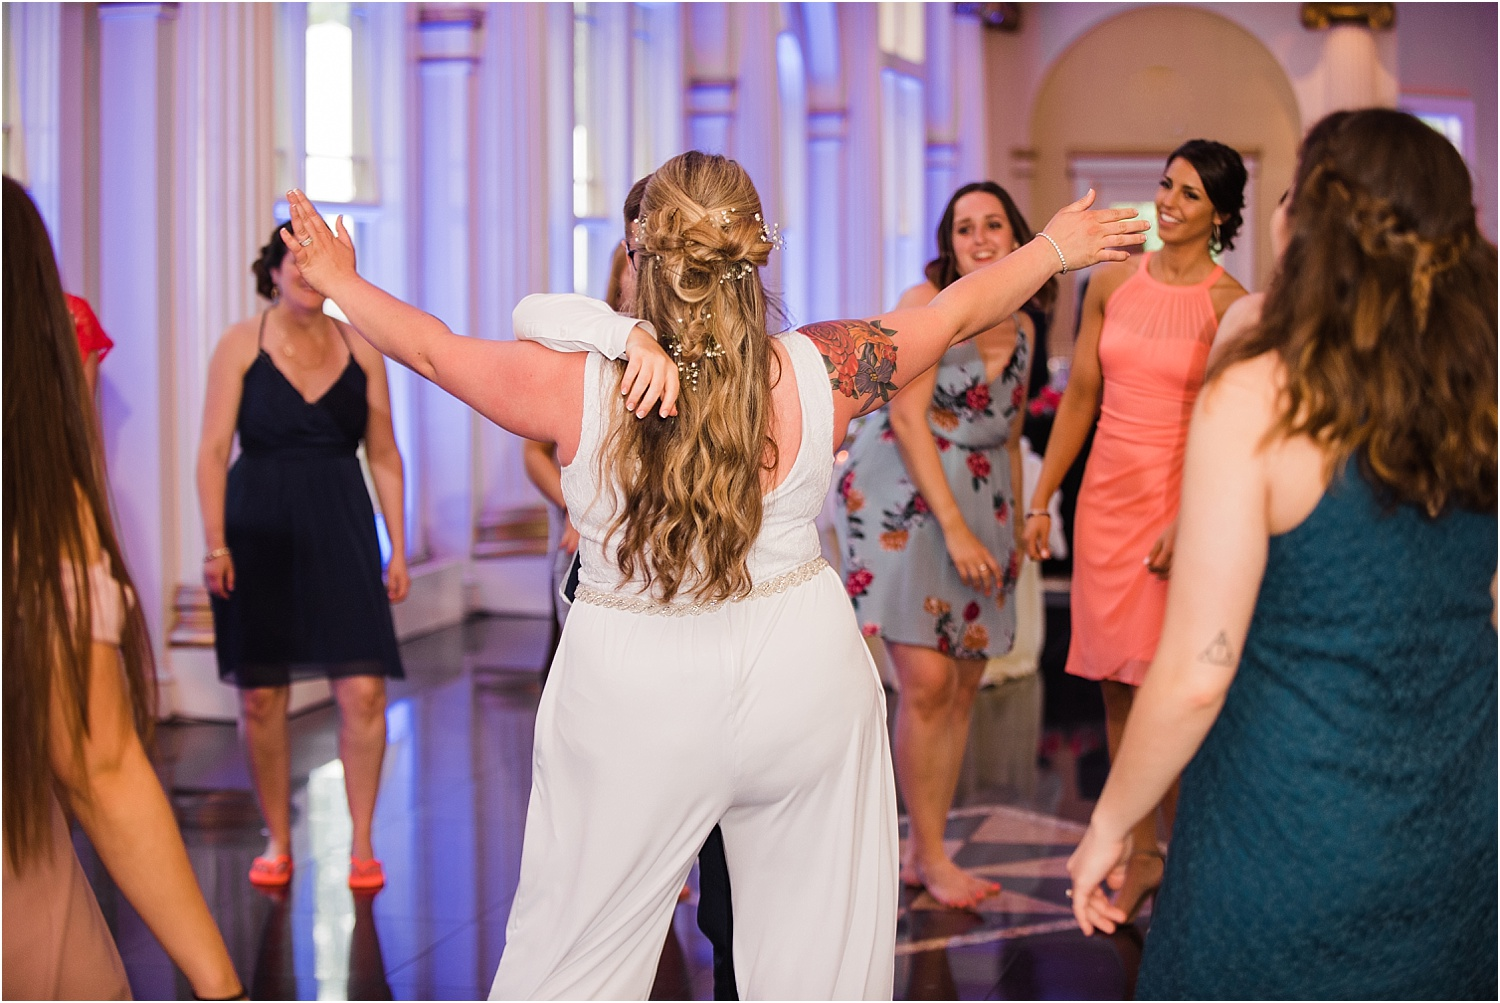 The_Riverview_Simsbury_Connecticut_Wedding_LGBT_Weddings_095.jpg